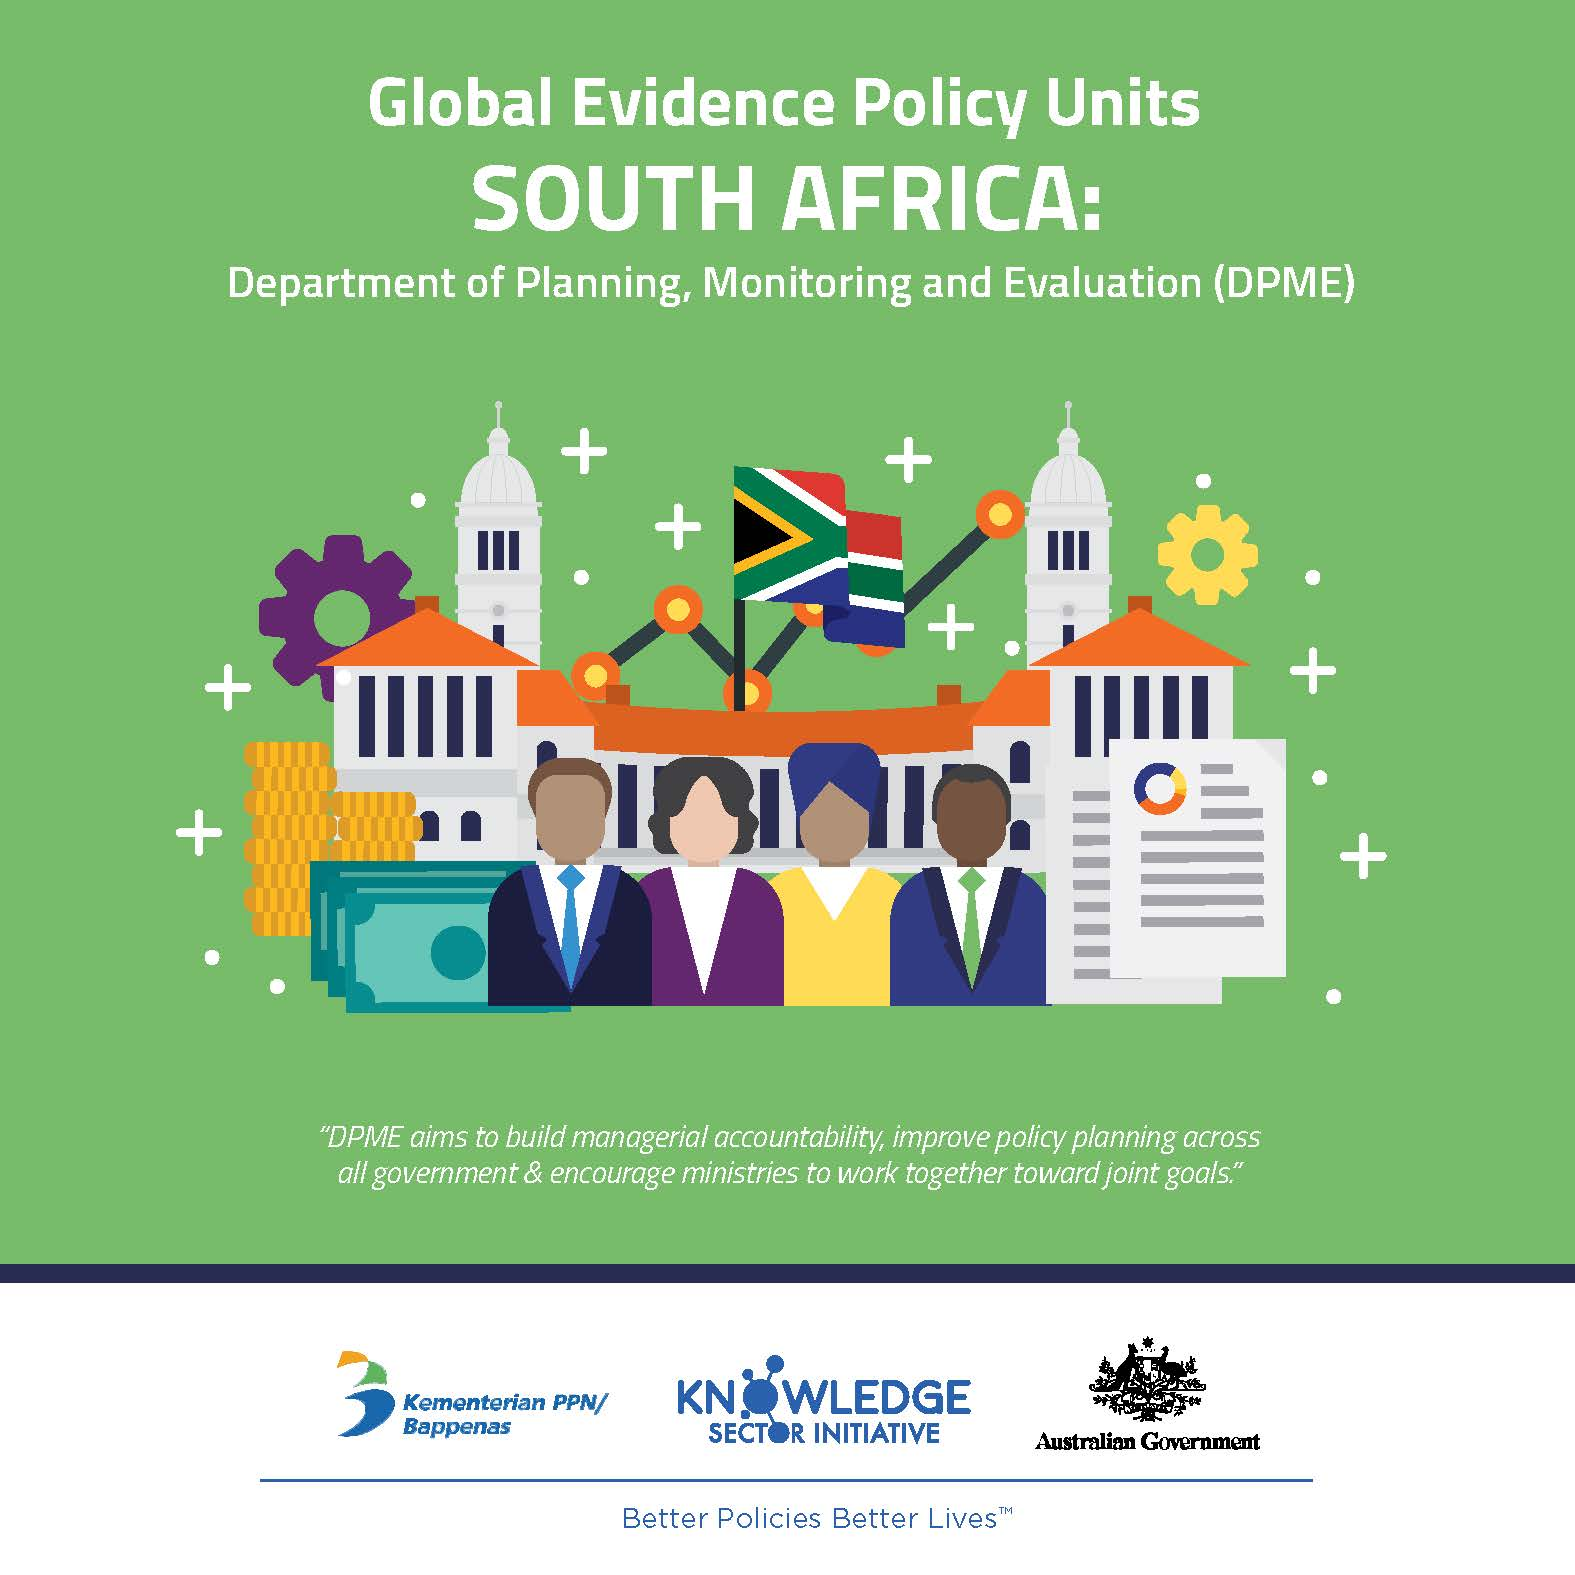 Evidence Policy Unit in South Africa: the Department for Planning, Monitoring and Evaluation (DPME)